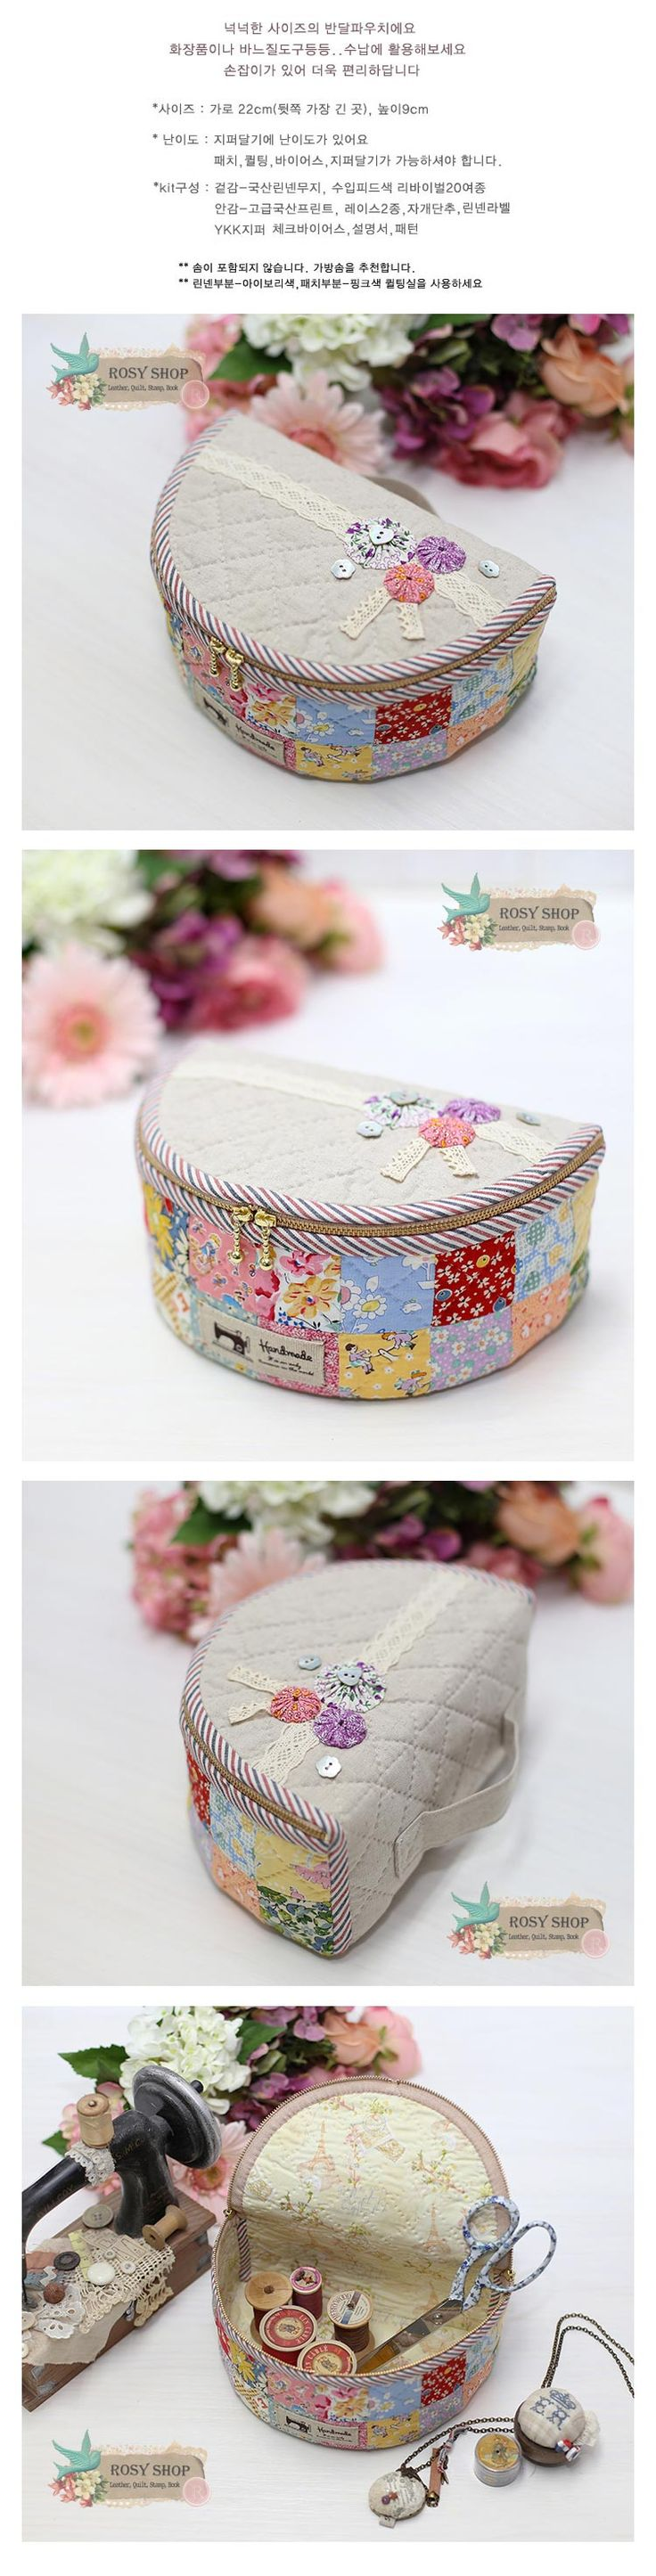 Sewing case - Rosy Quilt